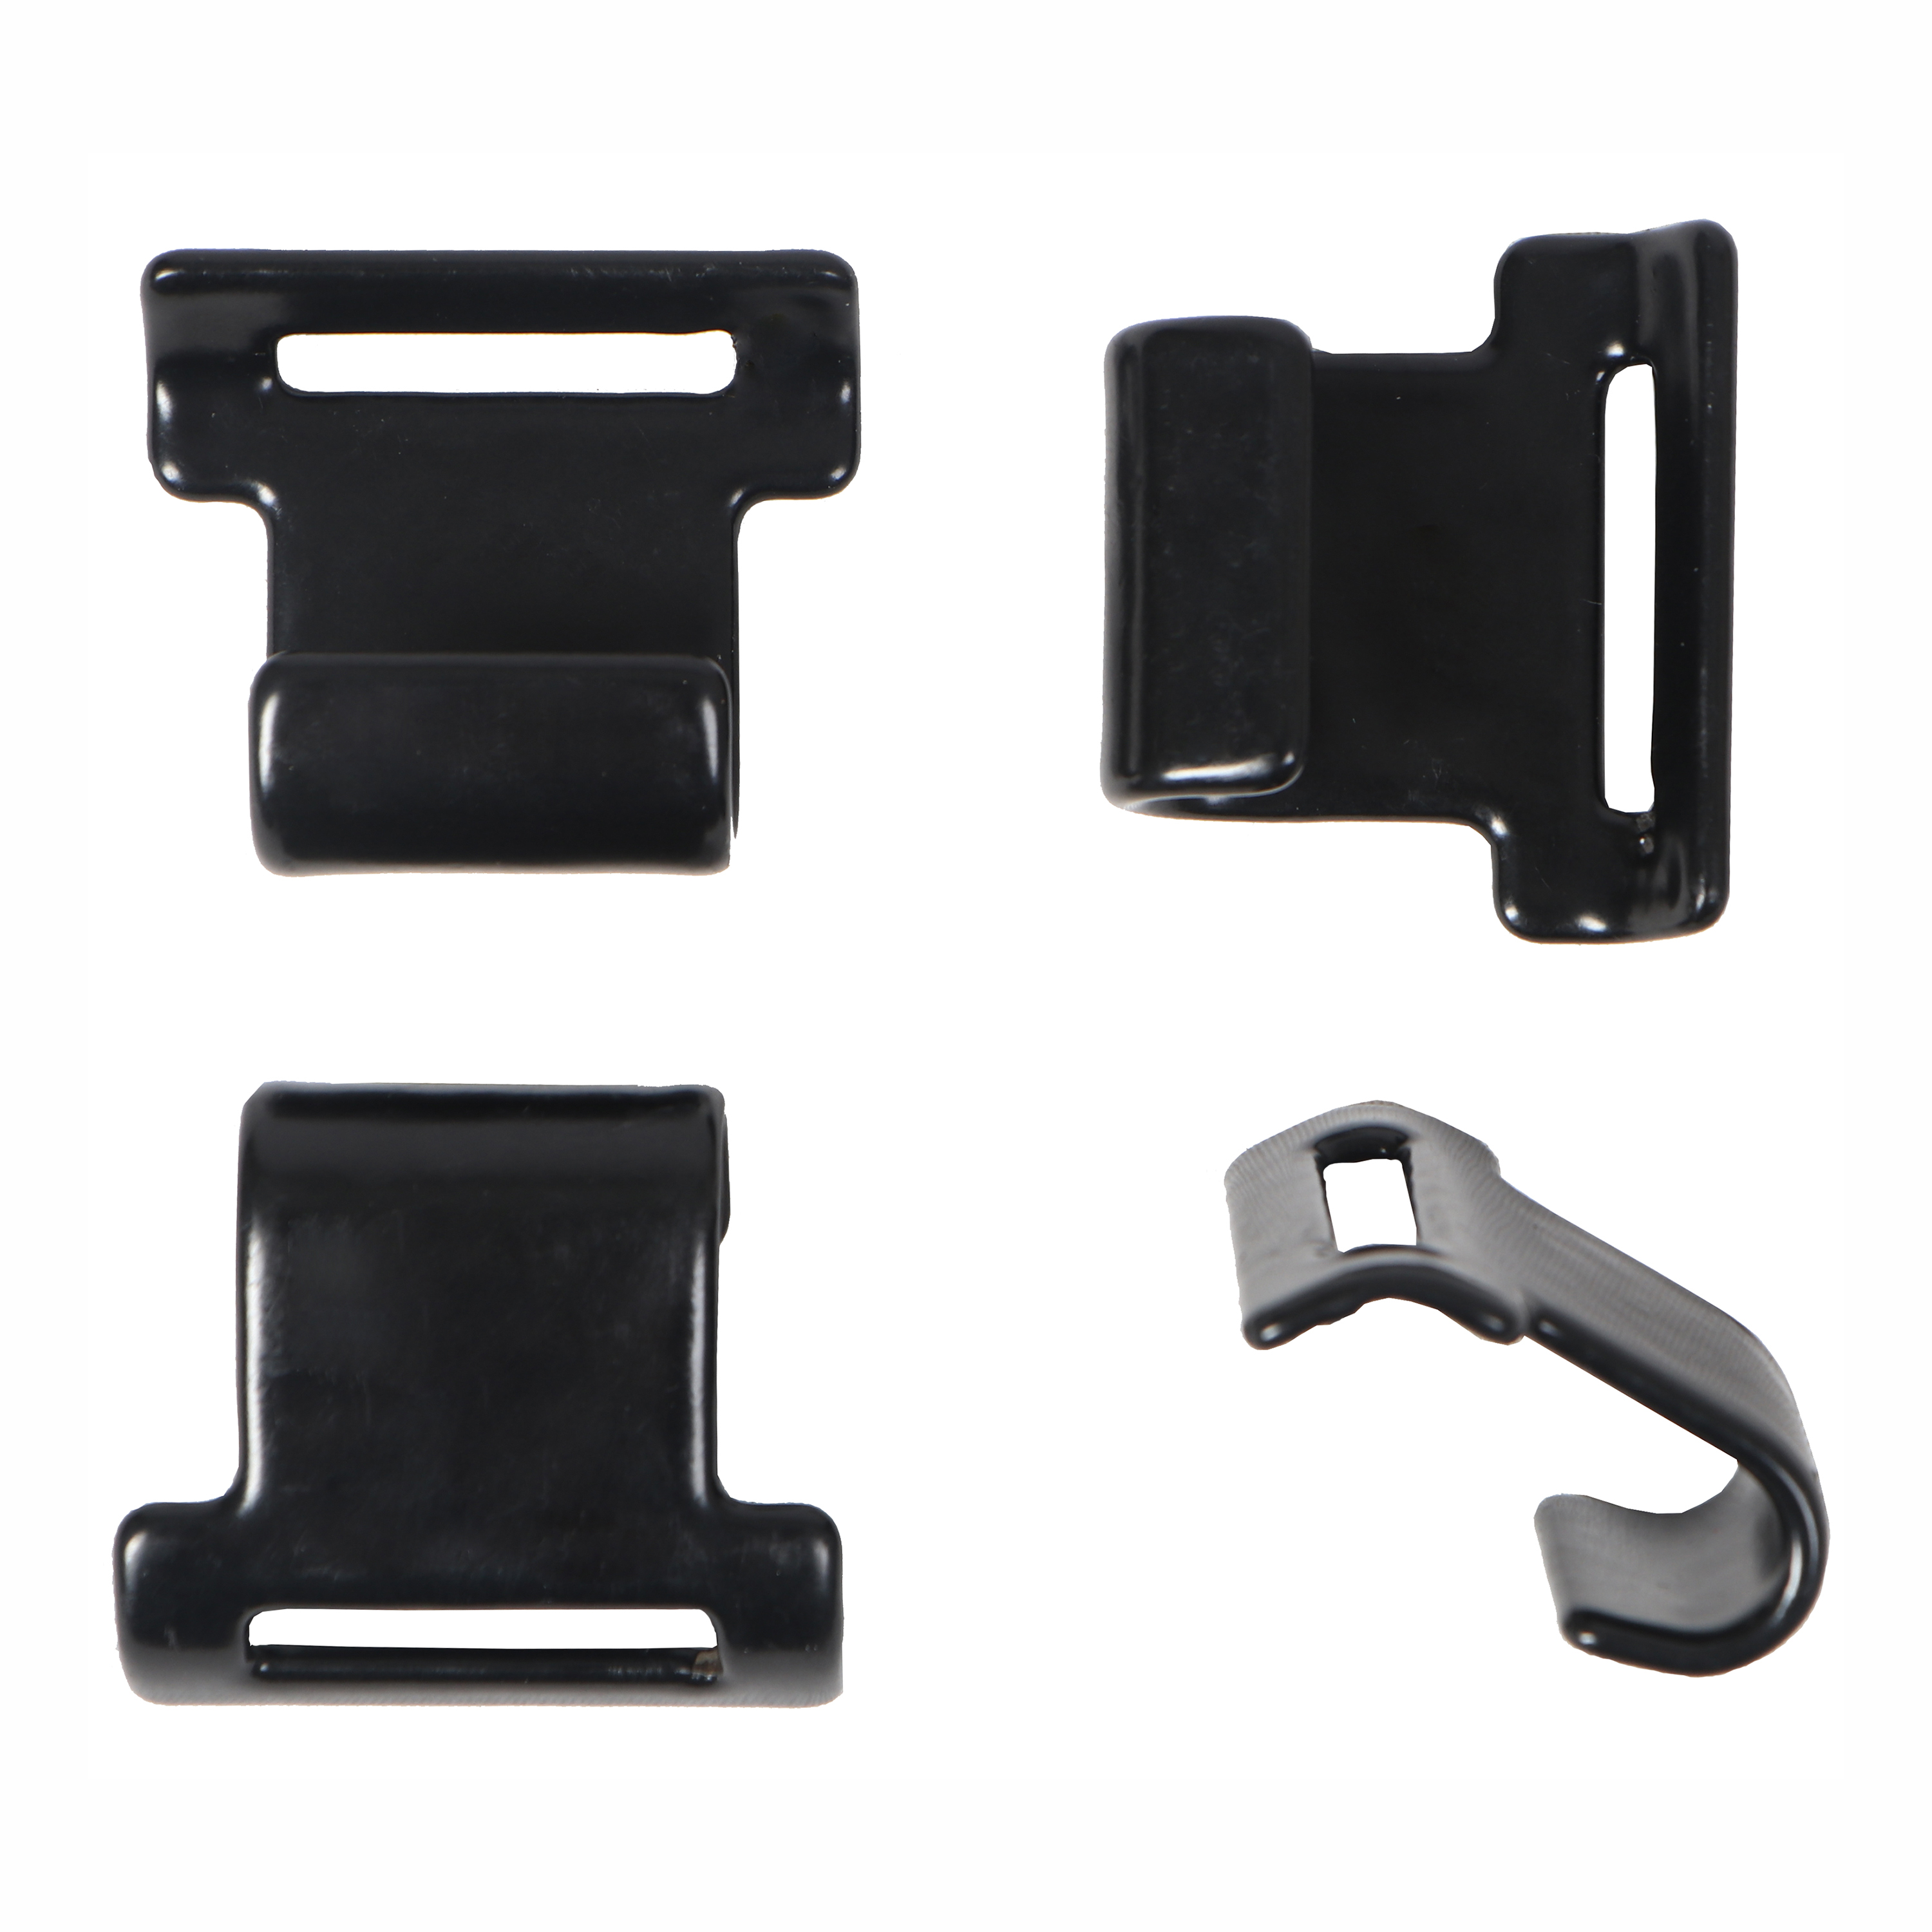 Rightline Gear Replacement Car Clips, 100600